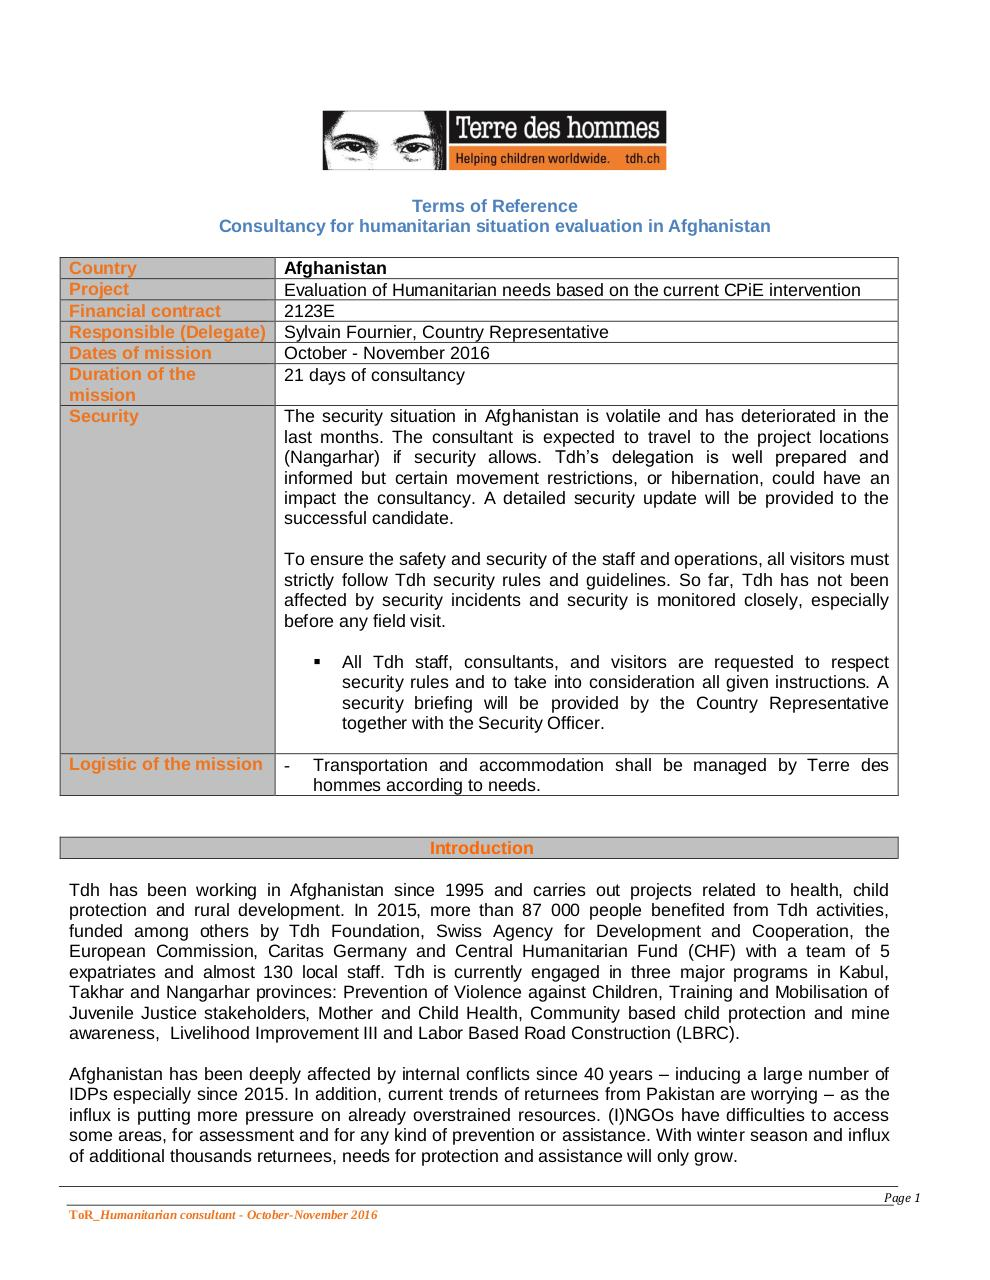 Aperçu du document ToR_Humanitarian Consultant 21 days.Afgha.pdf - page 1/3